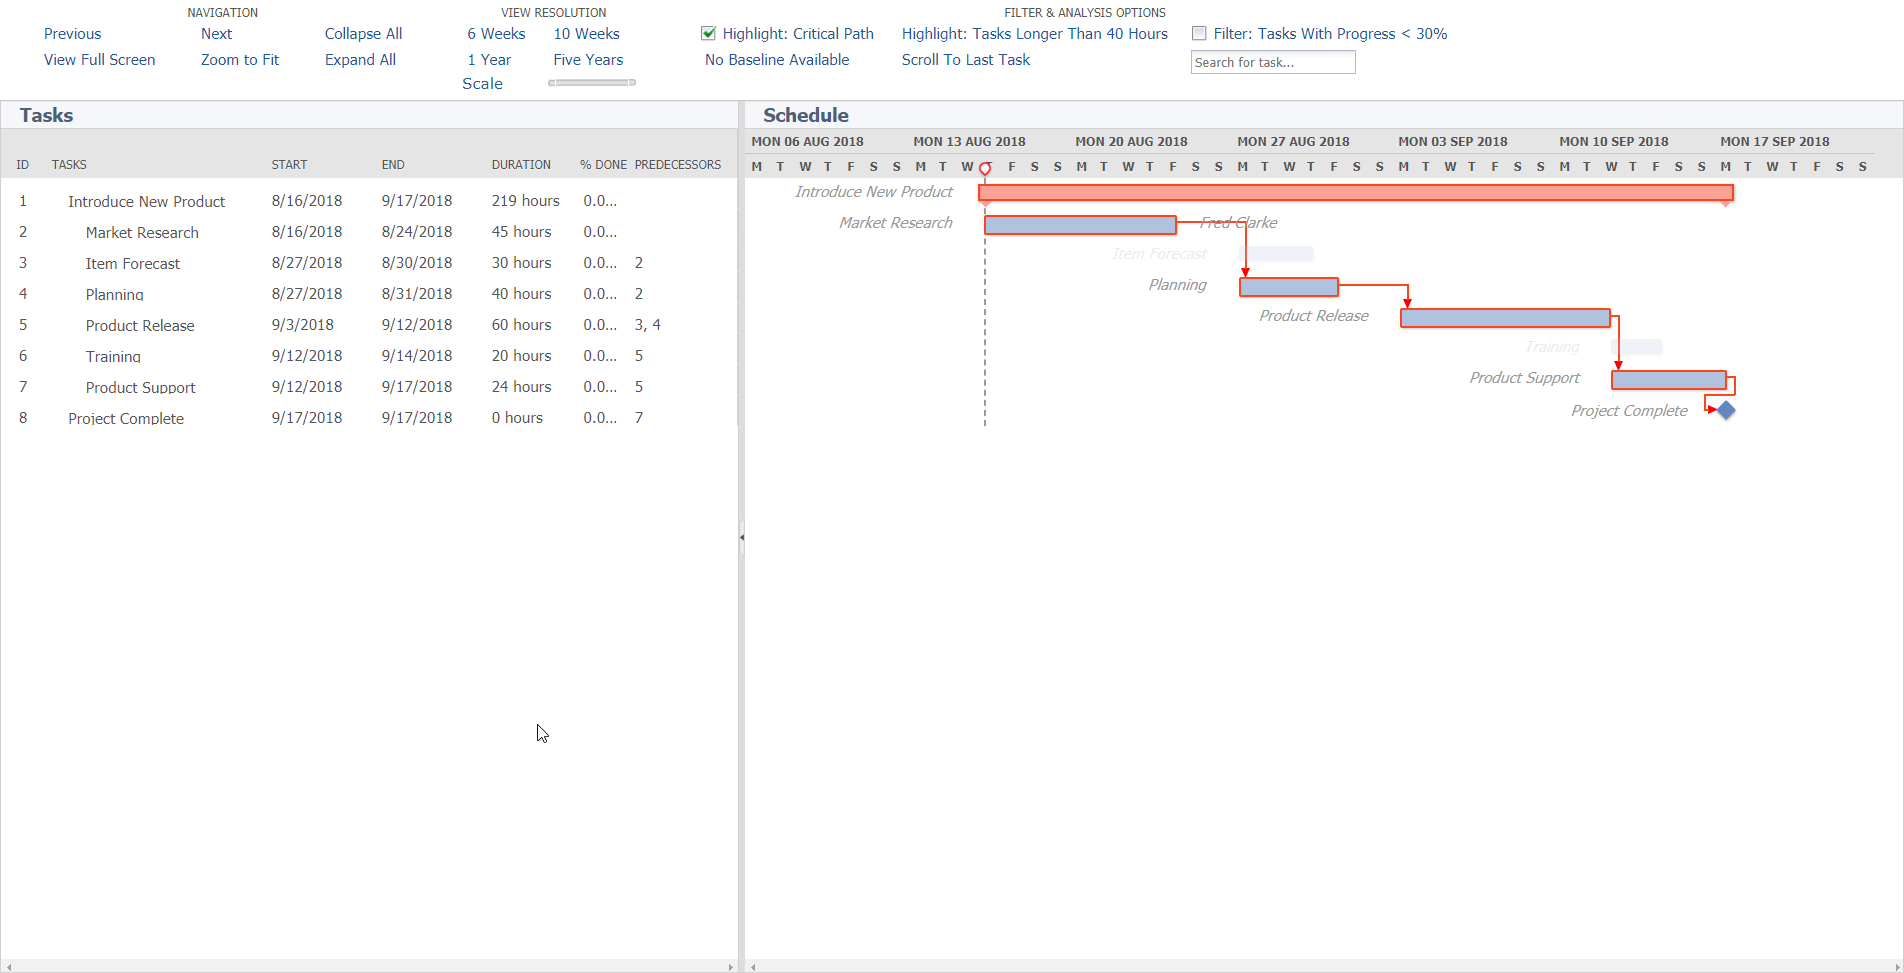 NetSuite Gantt chart w Critical Path Highlighted